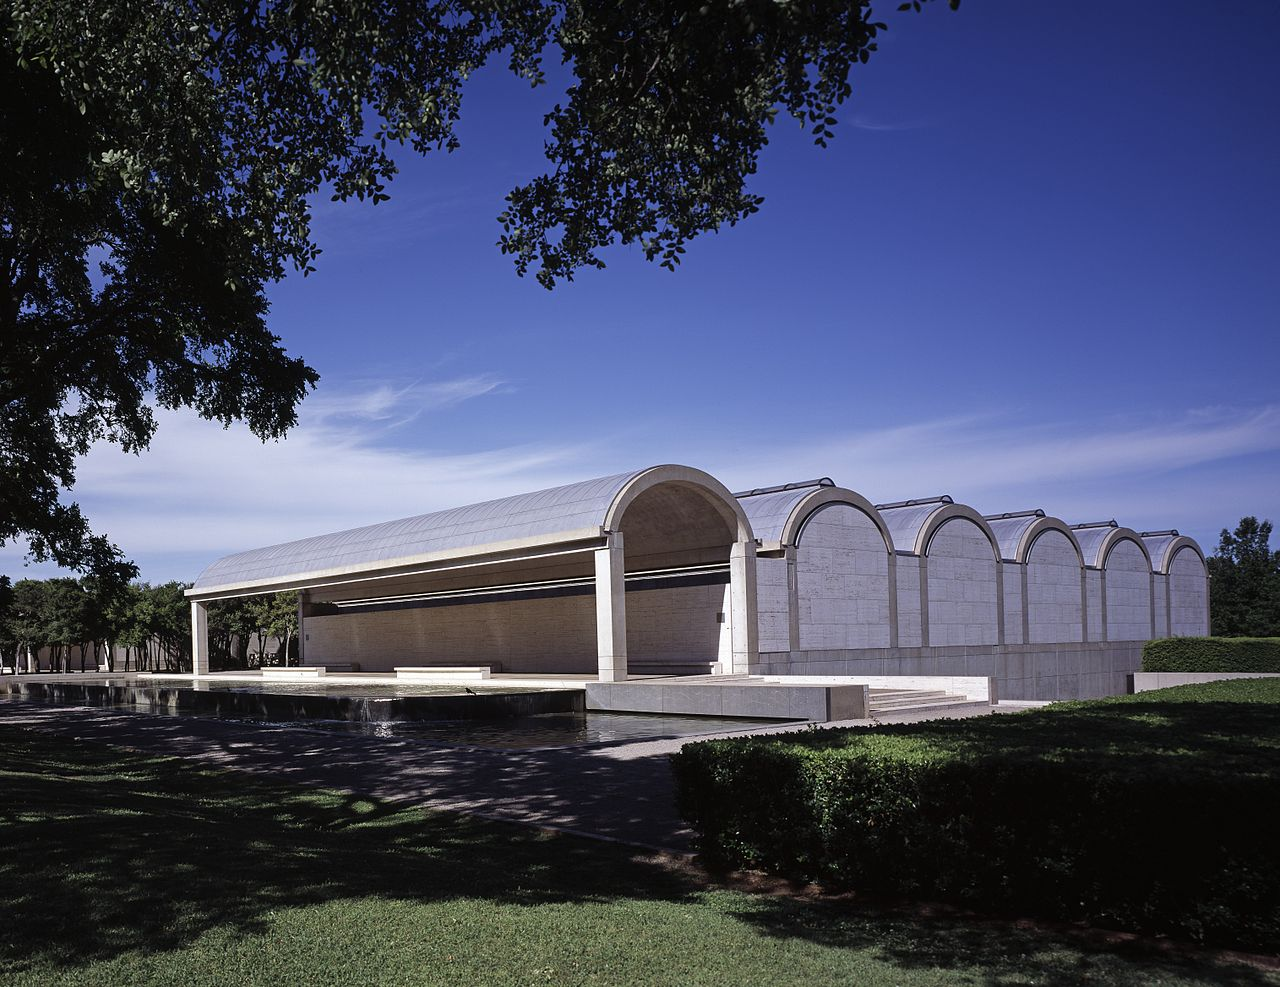 Famous Museum To Visit In Texas-Kimbell Art Museum, Fort Worth